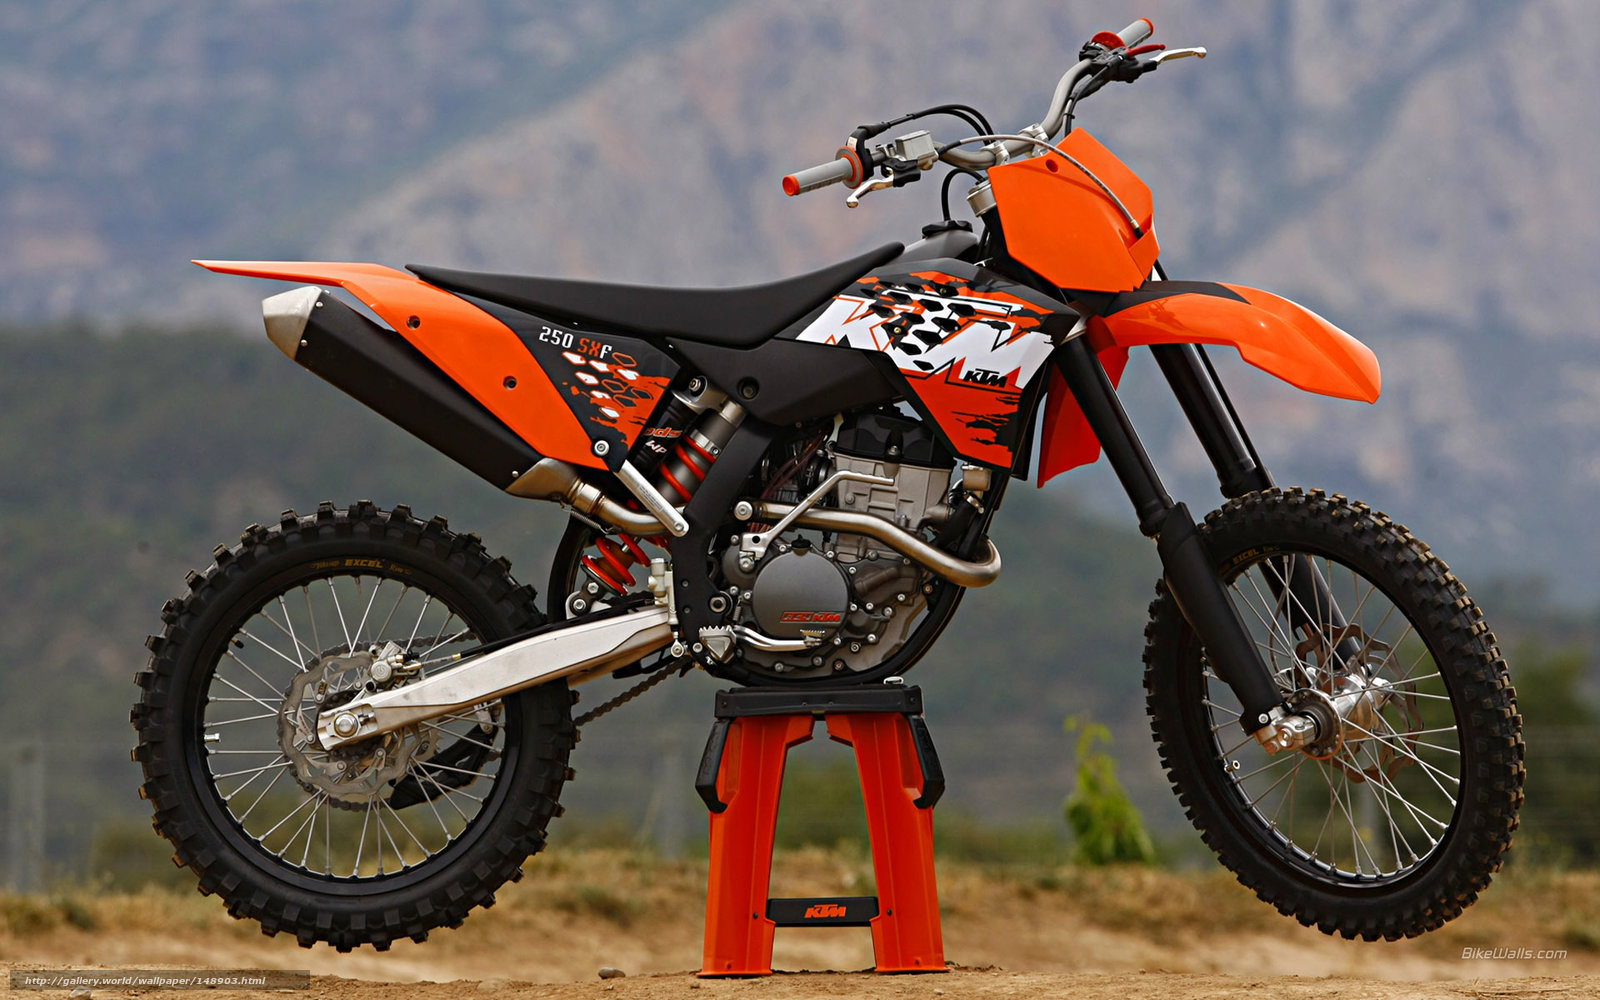 Download wallpaper KTM Motocross SX 250 SX F 250 SX F 2008 1600x1000